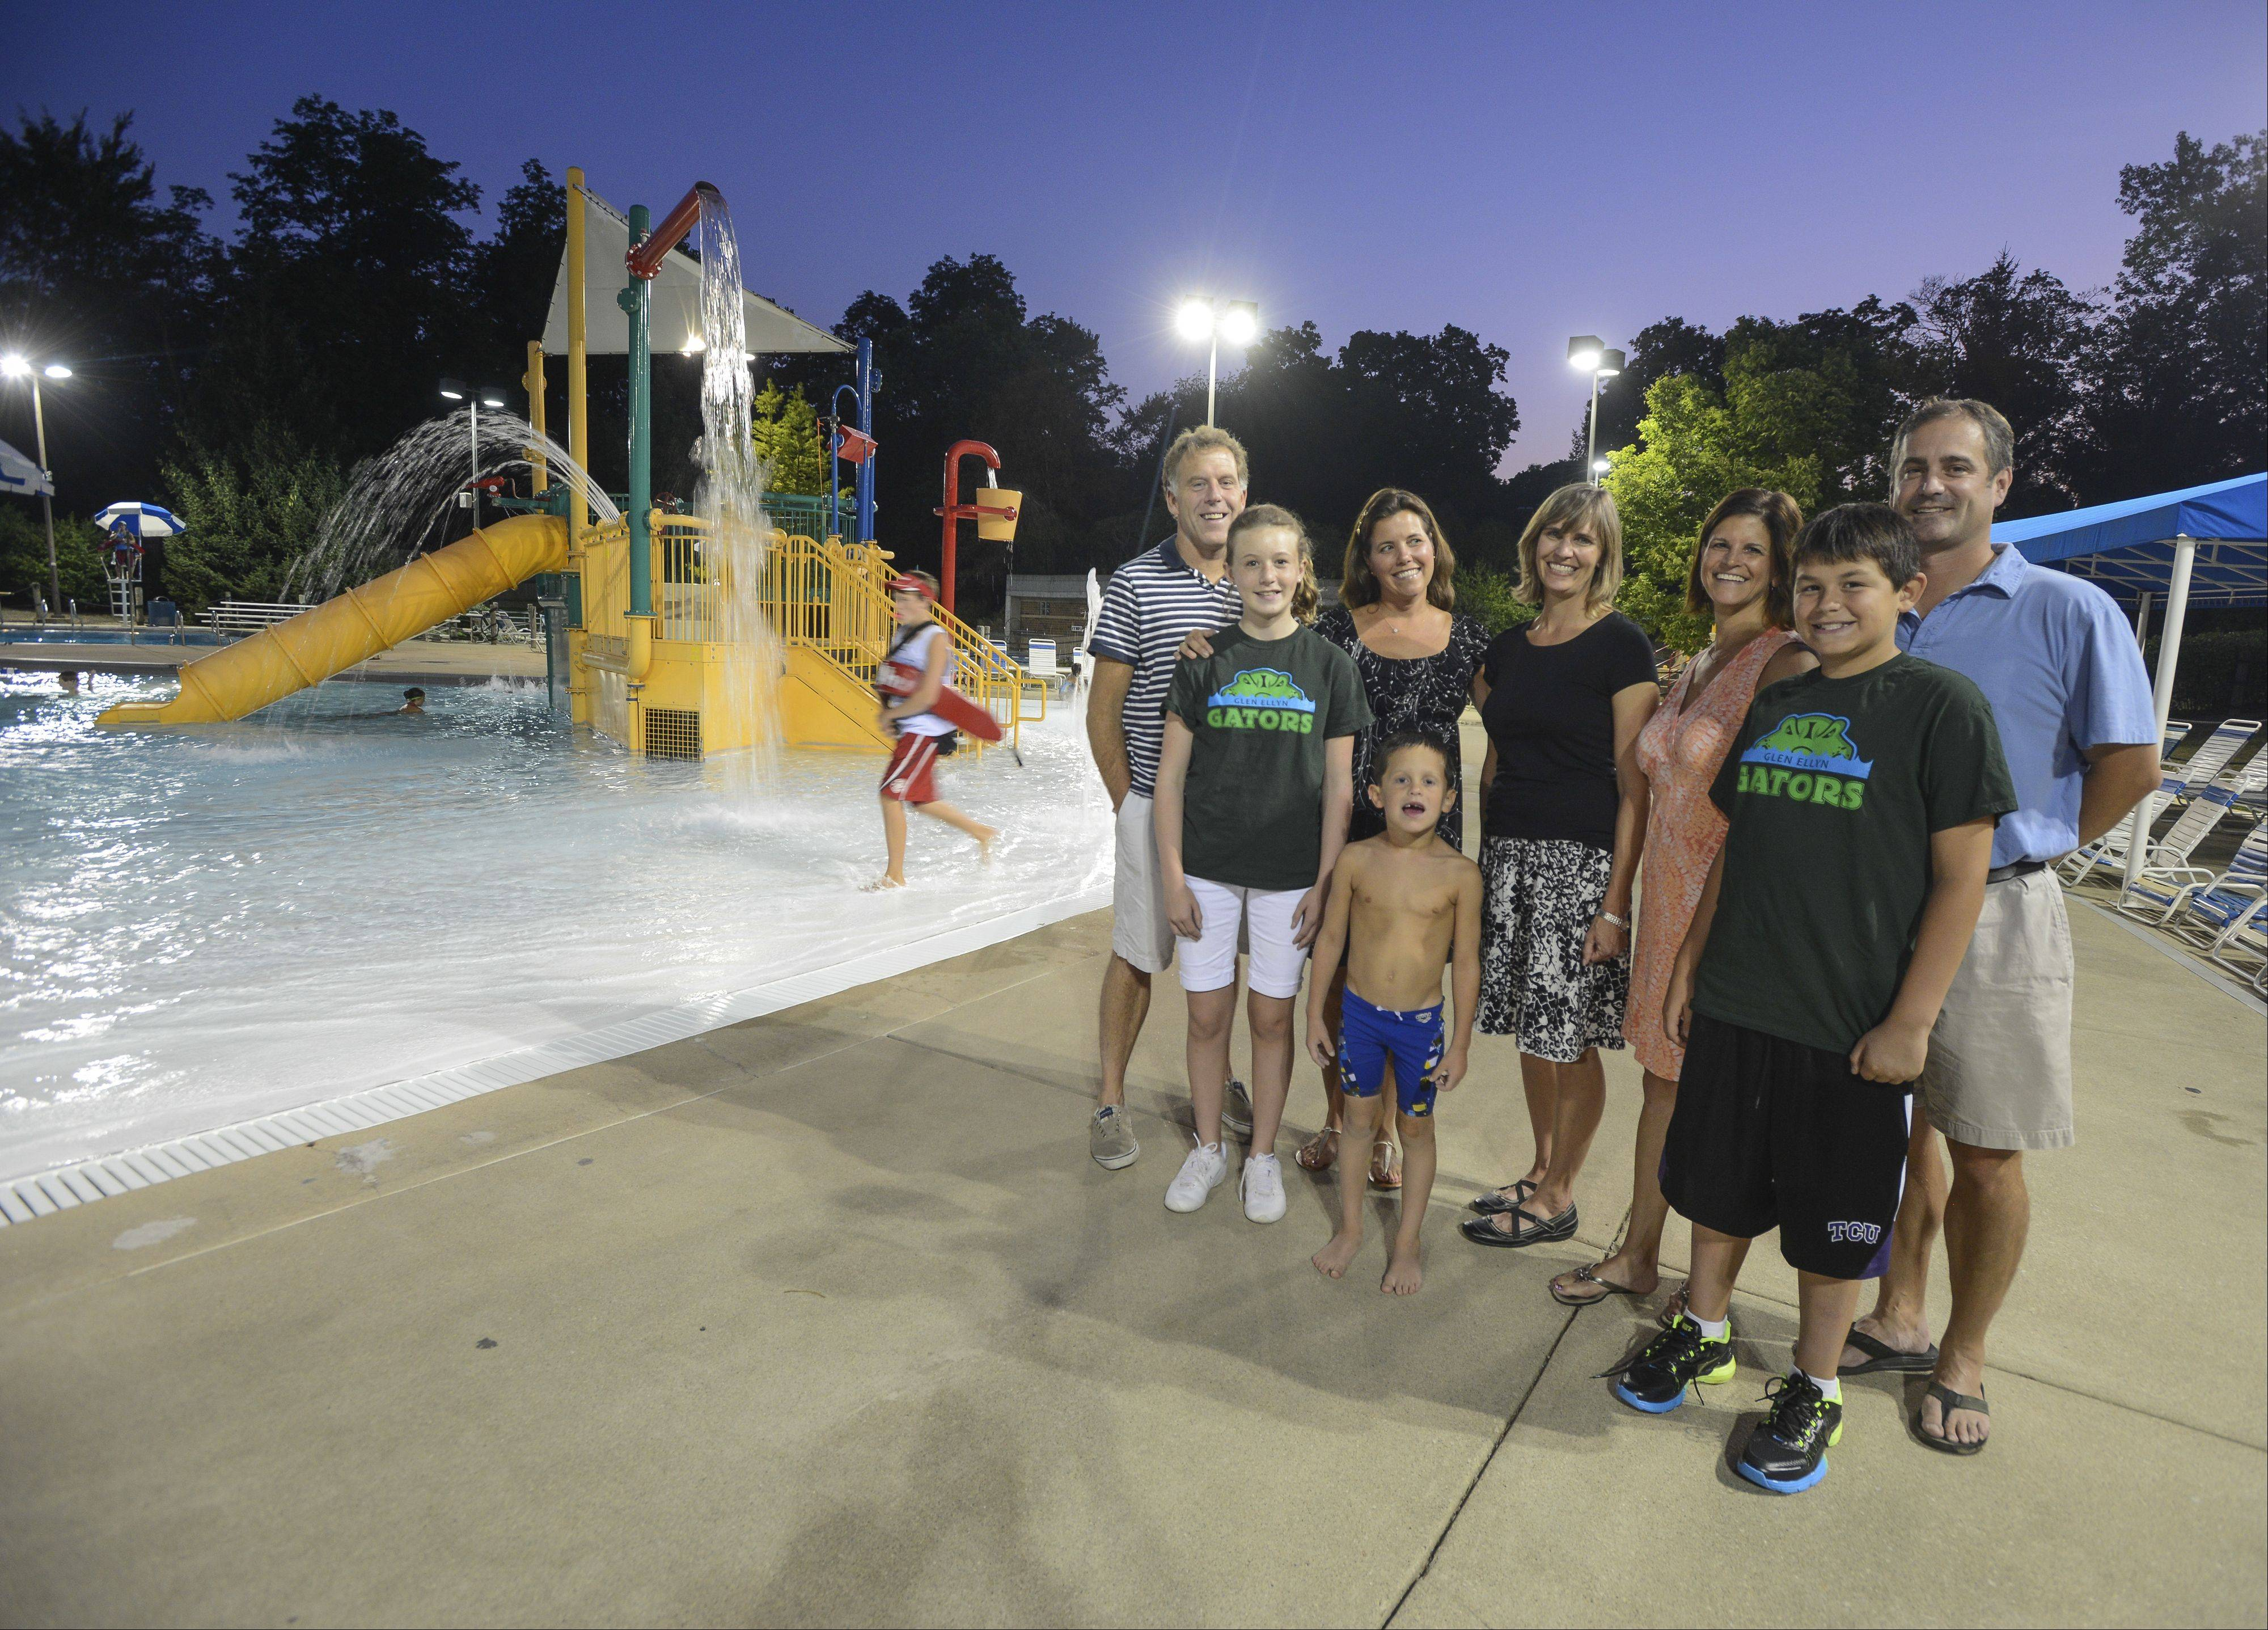 A community group called the Glen Ellyn Aquatics Initiative raised $20,000 to fund a feasibility study that will explore the possibility of an indoor, year-round pool in Glen Ellyn. Right now, the only public pool operated by the park district is Sunset Pool, an outdoor facility only open during the summer.